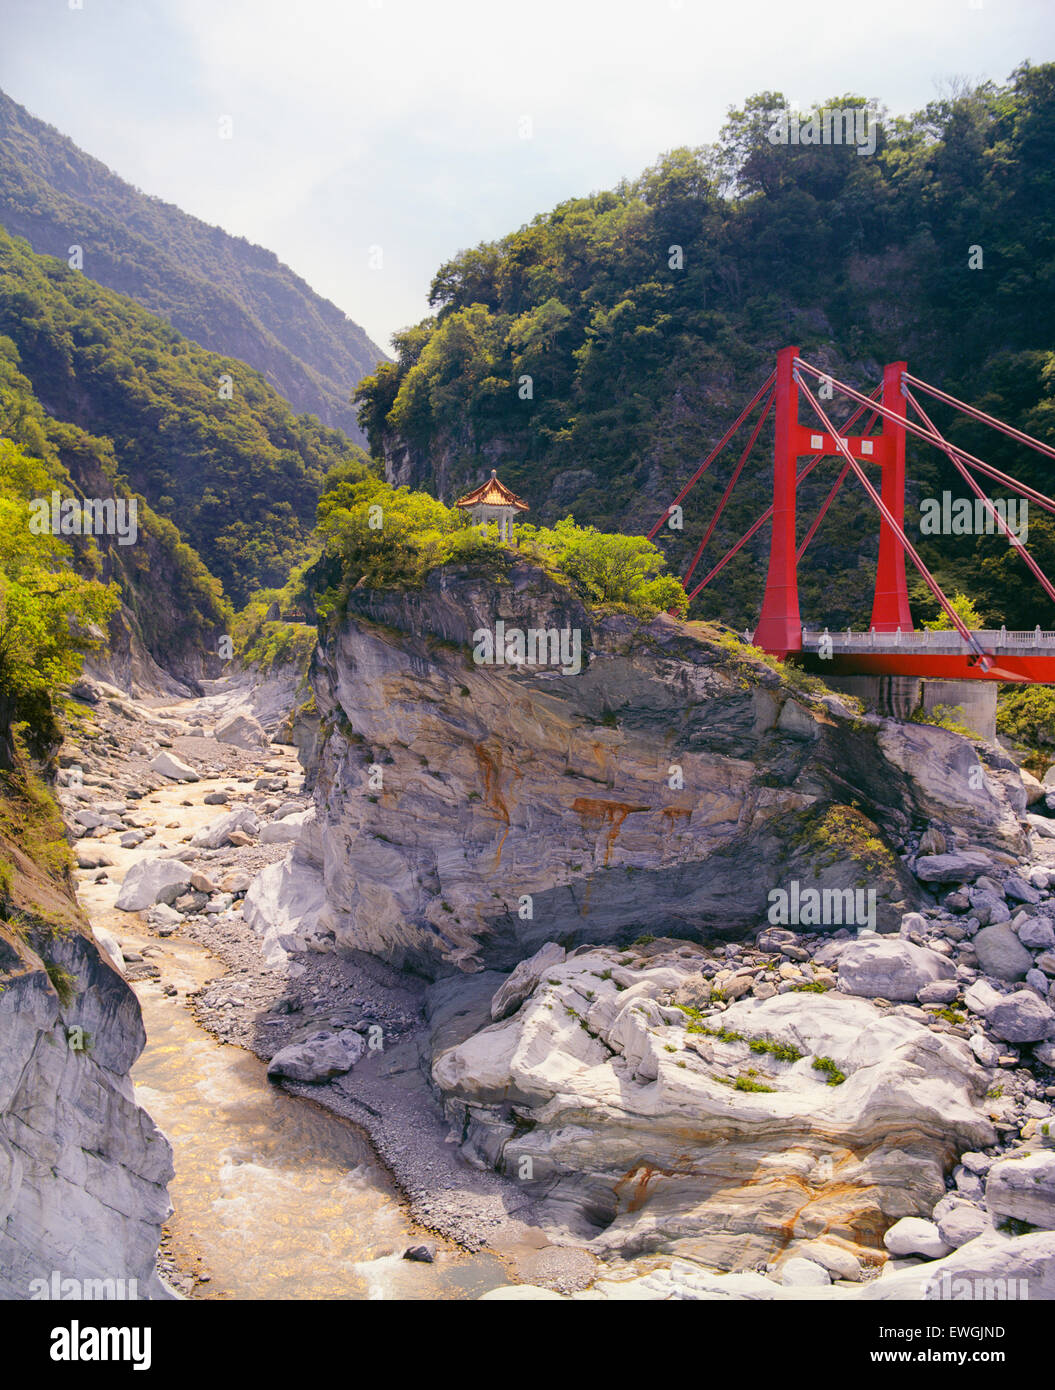 Cihmu Bridge e una piccola pagoda a Taroko National Park .Taiwan, in Asia. Immagini Stock